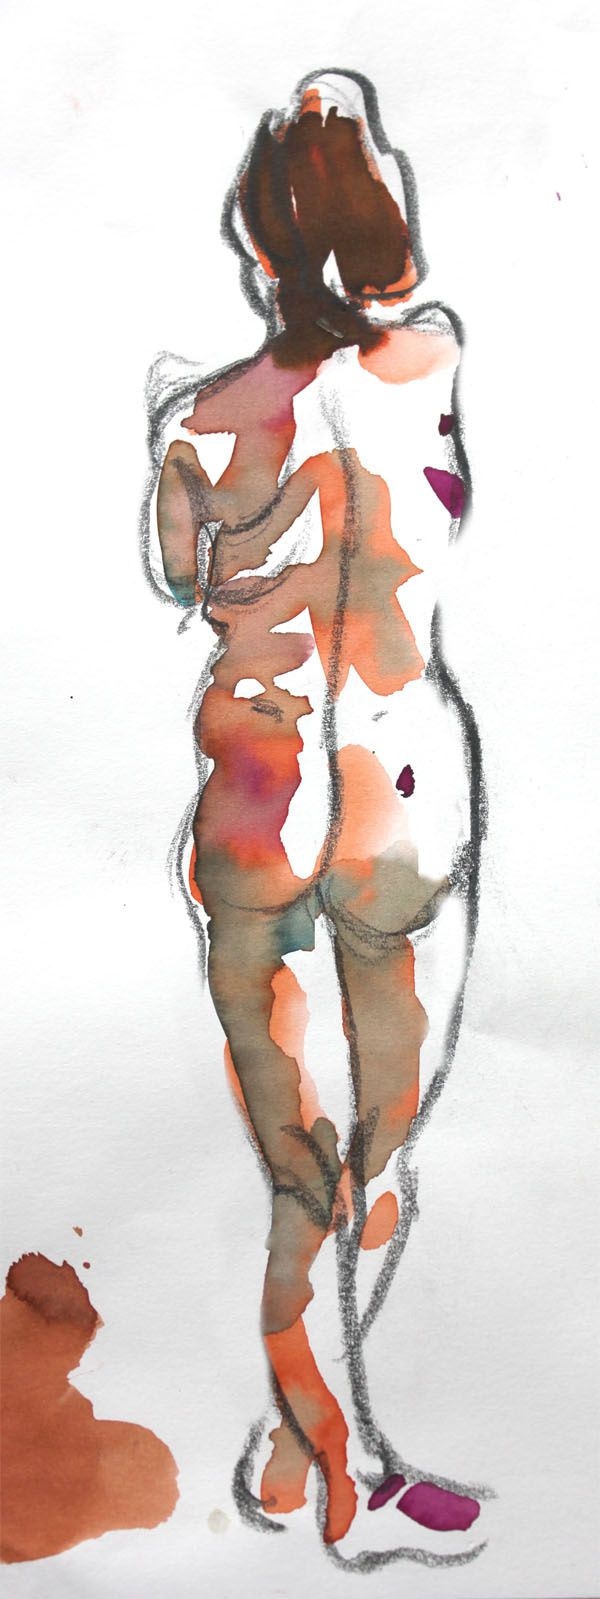 Modèle Vivant : pose de 5 minutes à l'encre aquarelle / Life-drawing : required time of 5 minutes, with brillant watercolour